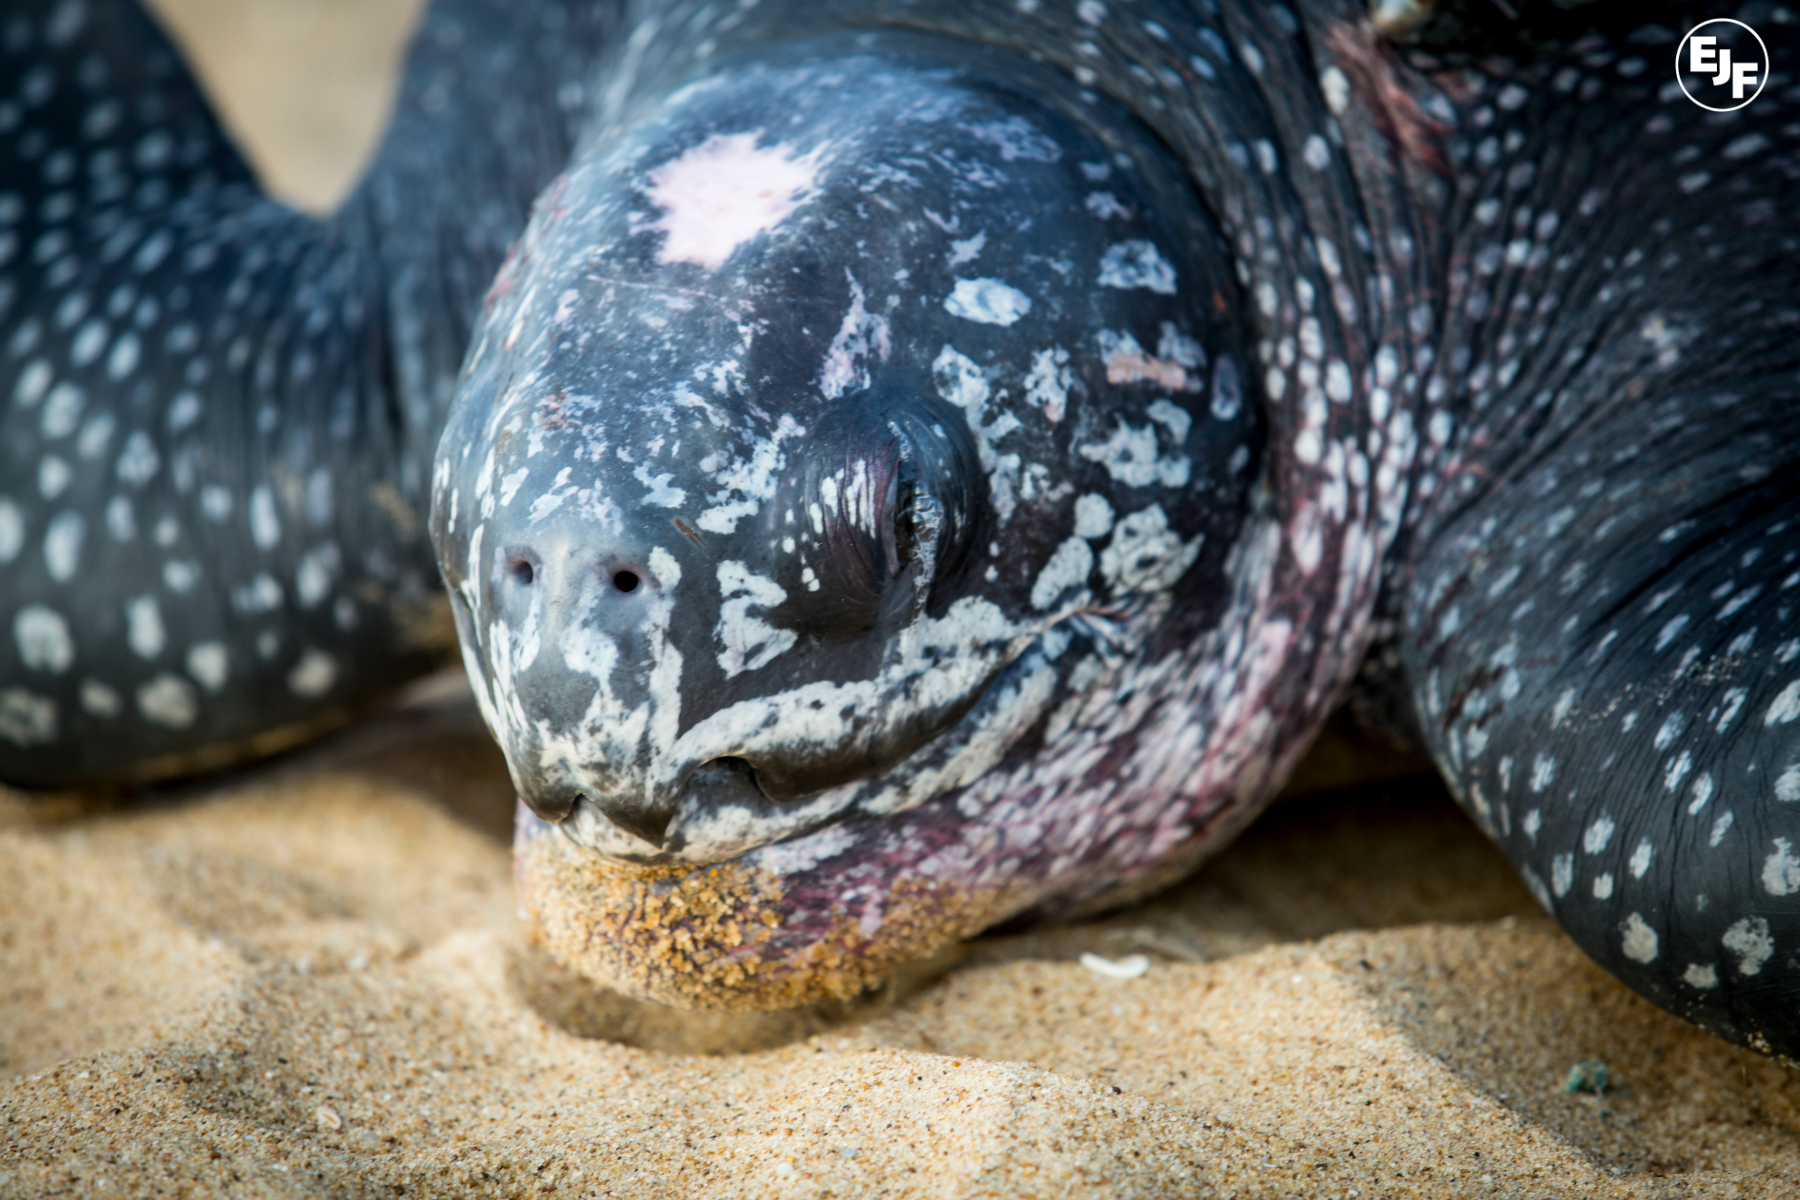 Notes from the field: turtle conservation up close